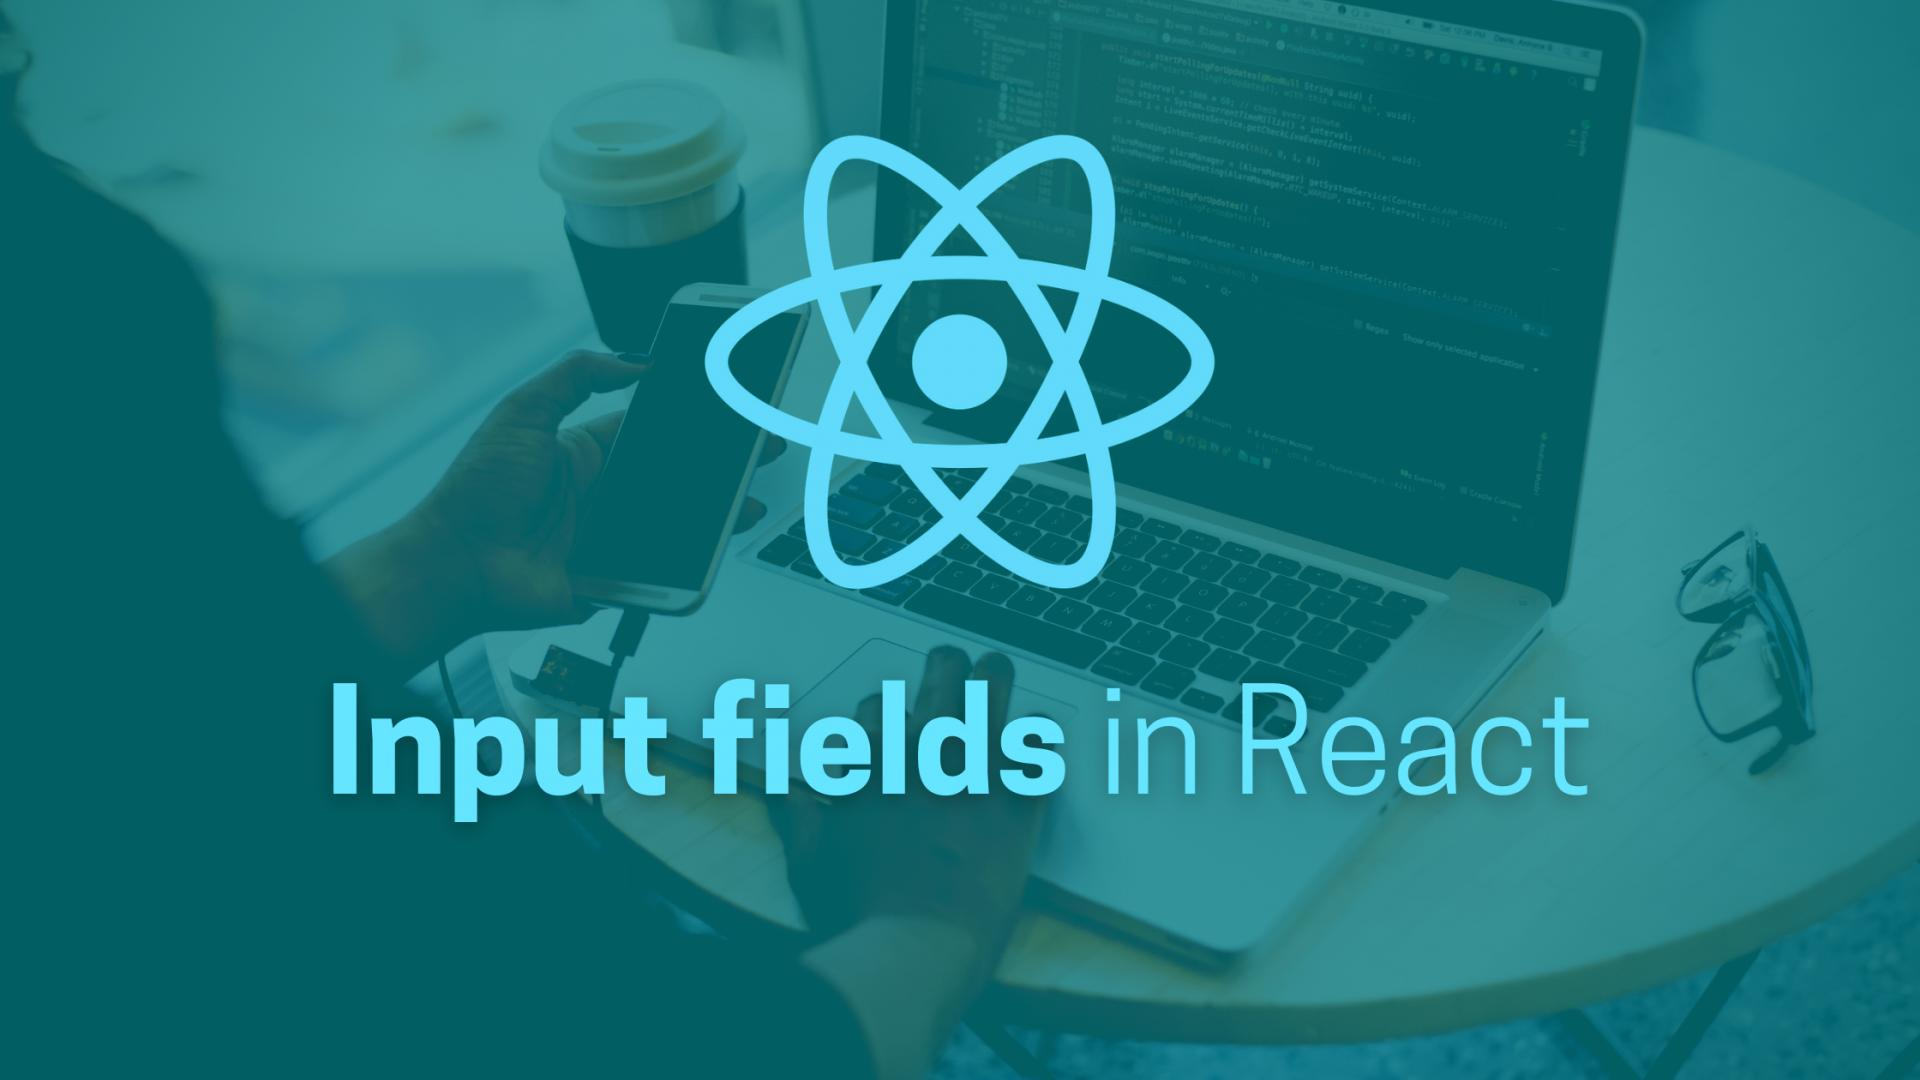 Working with input fields in React